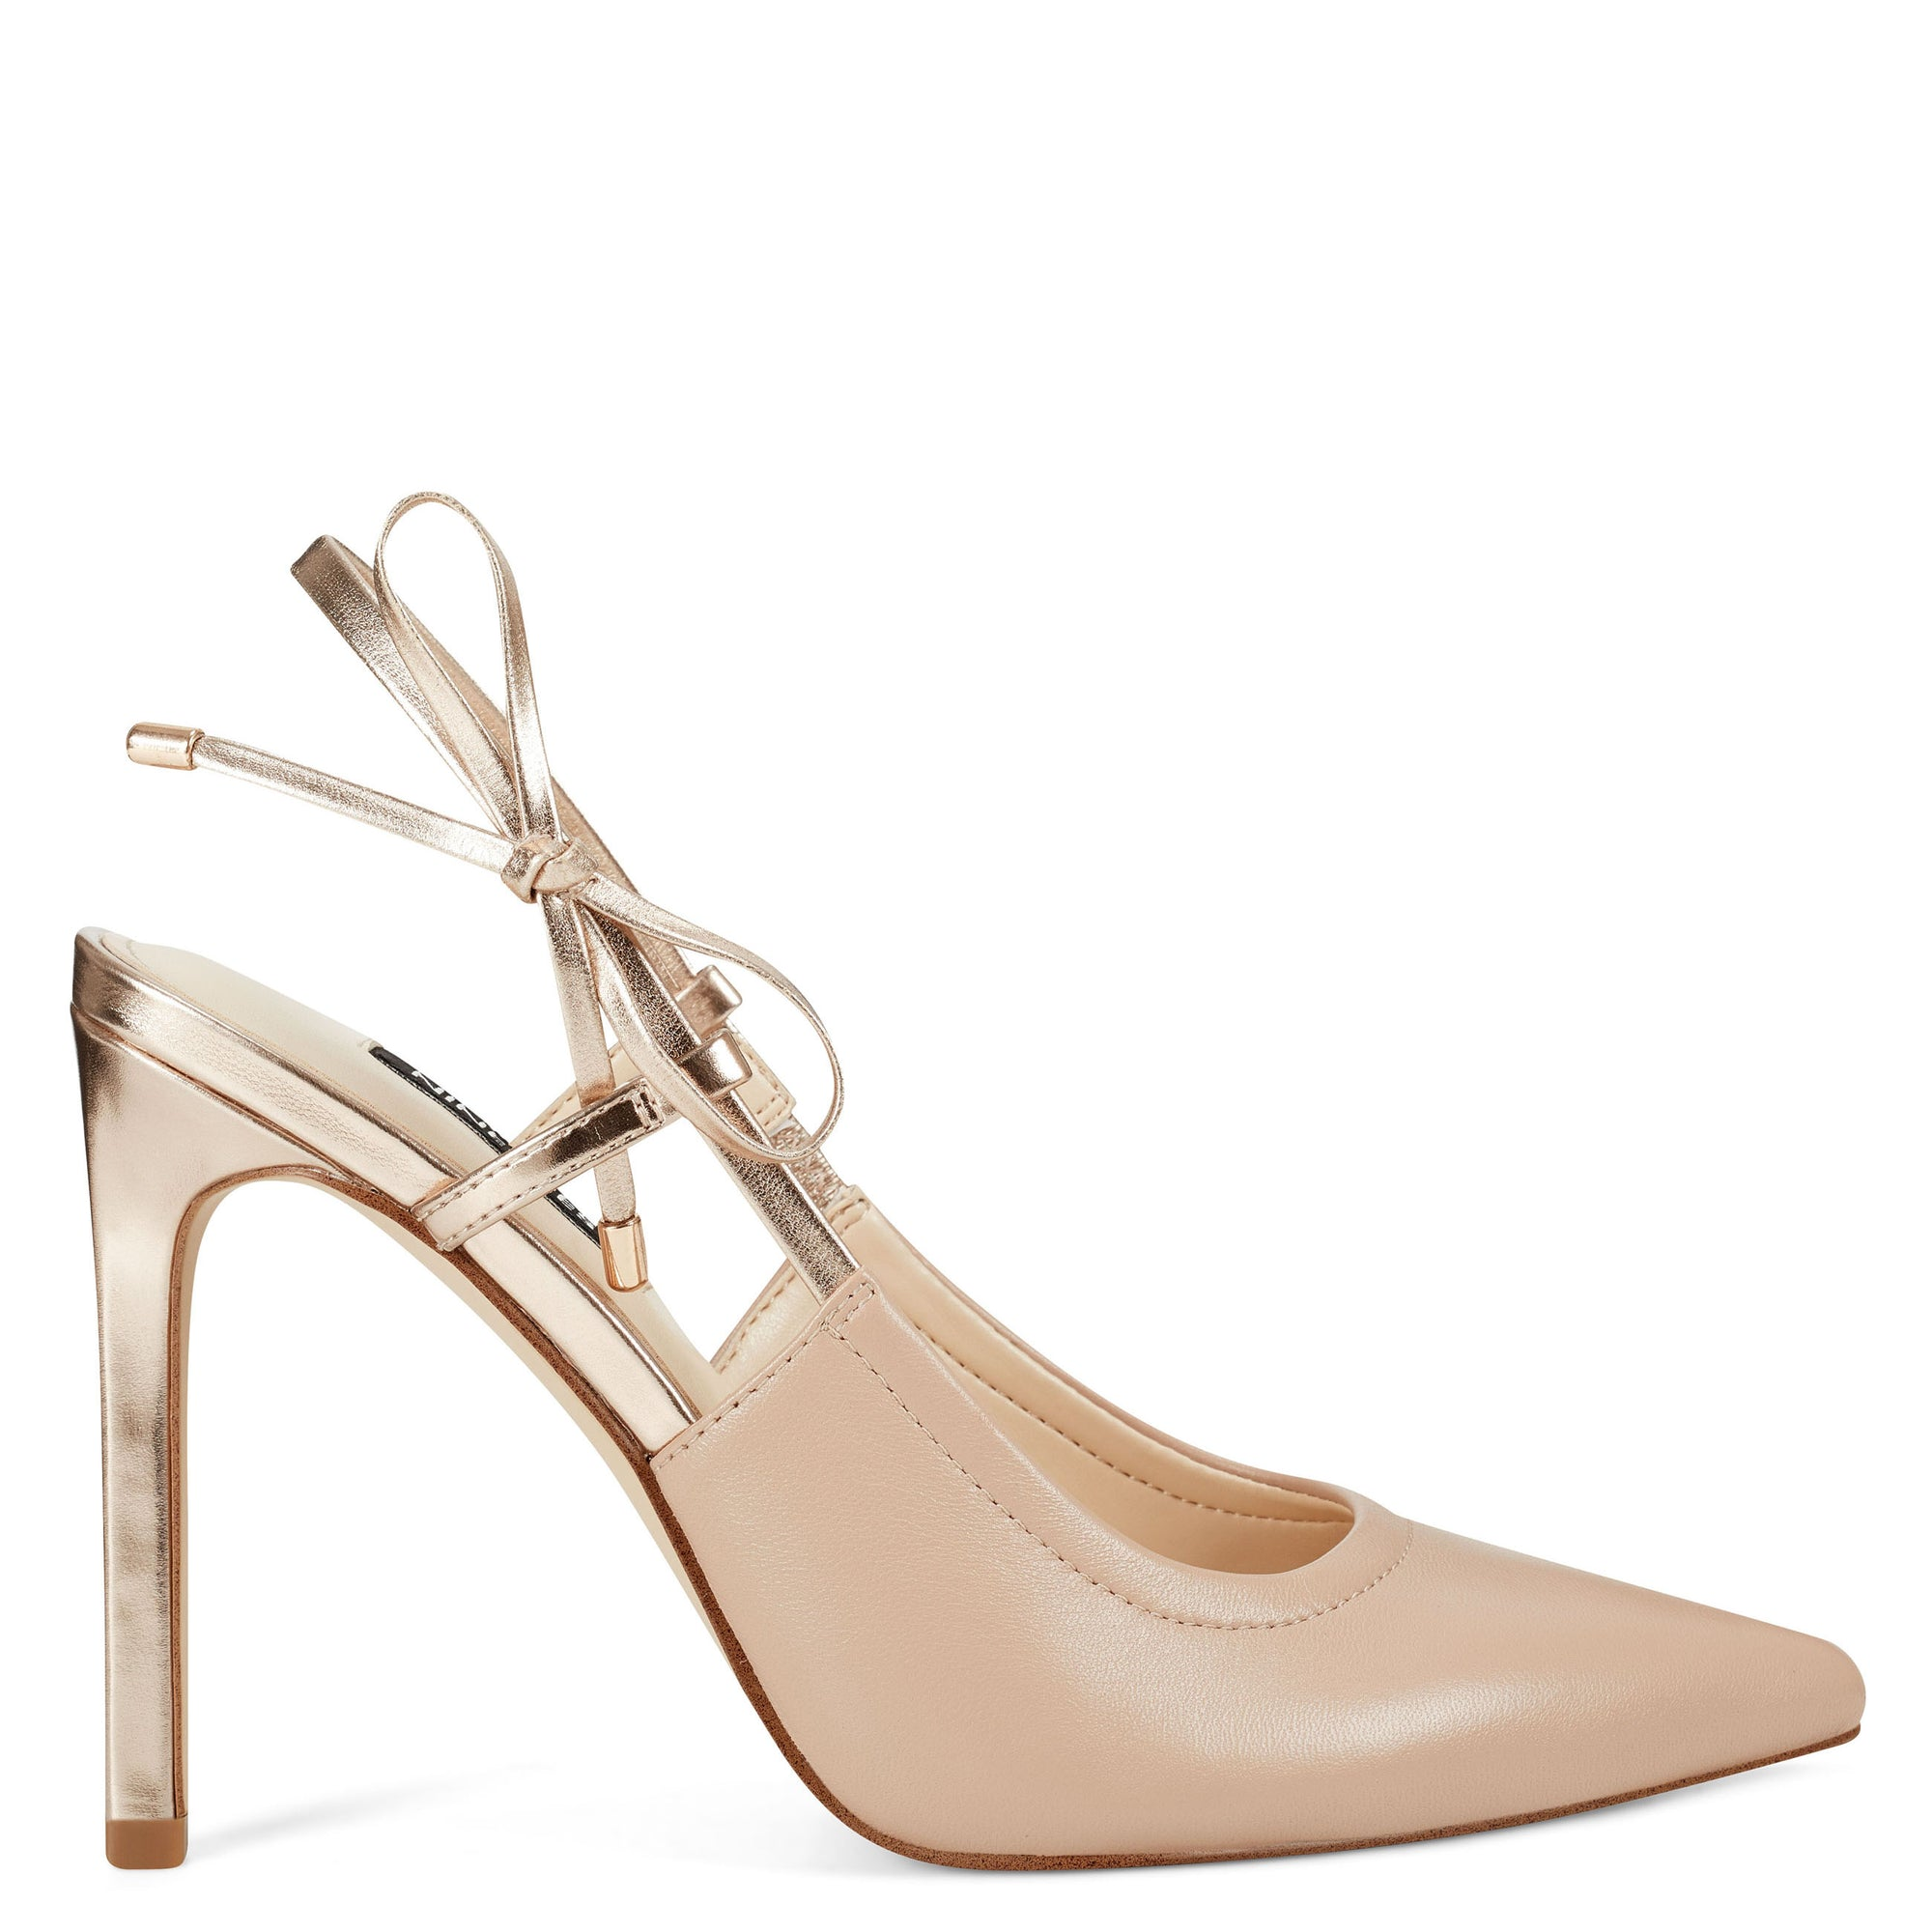 tibby-bow-dress-pump-in-barely-nude-multi